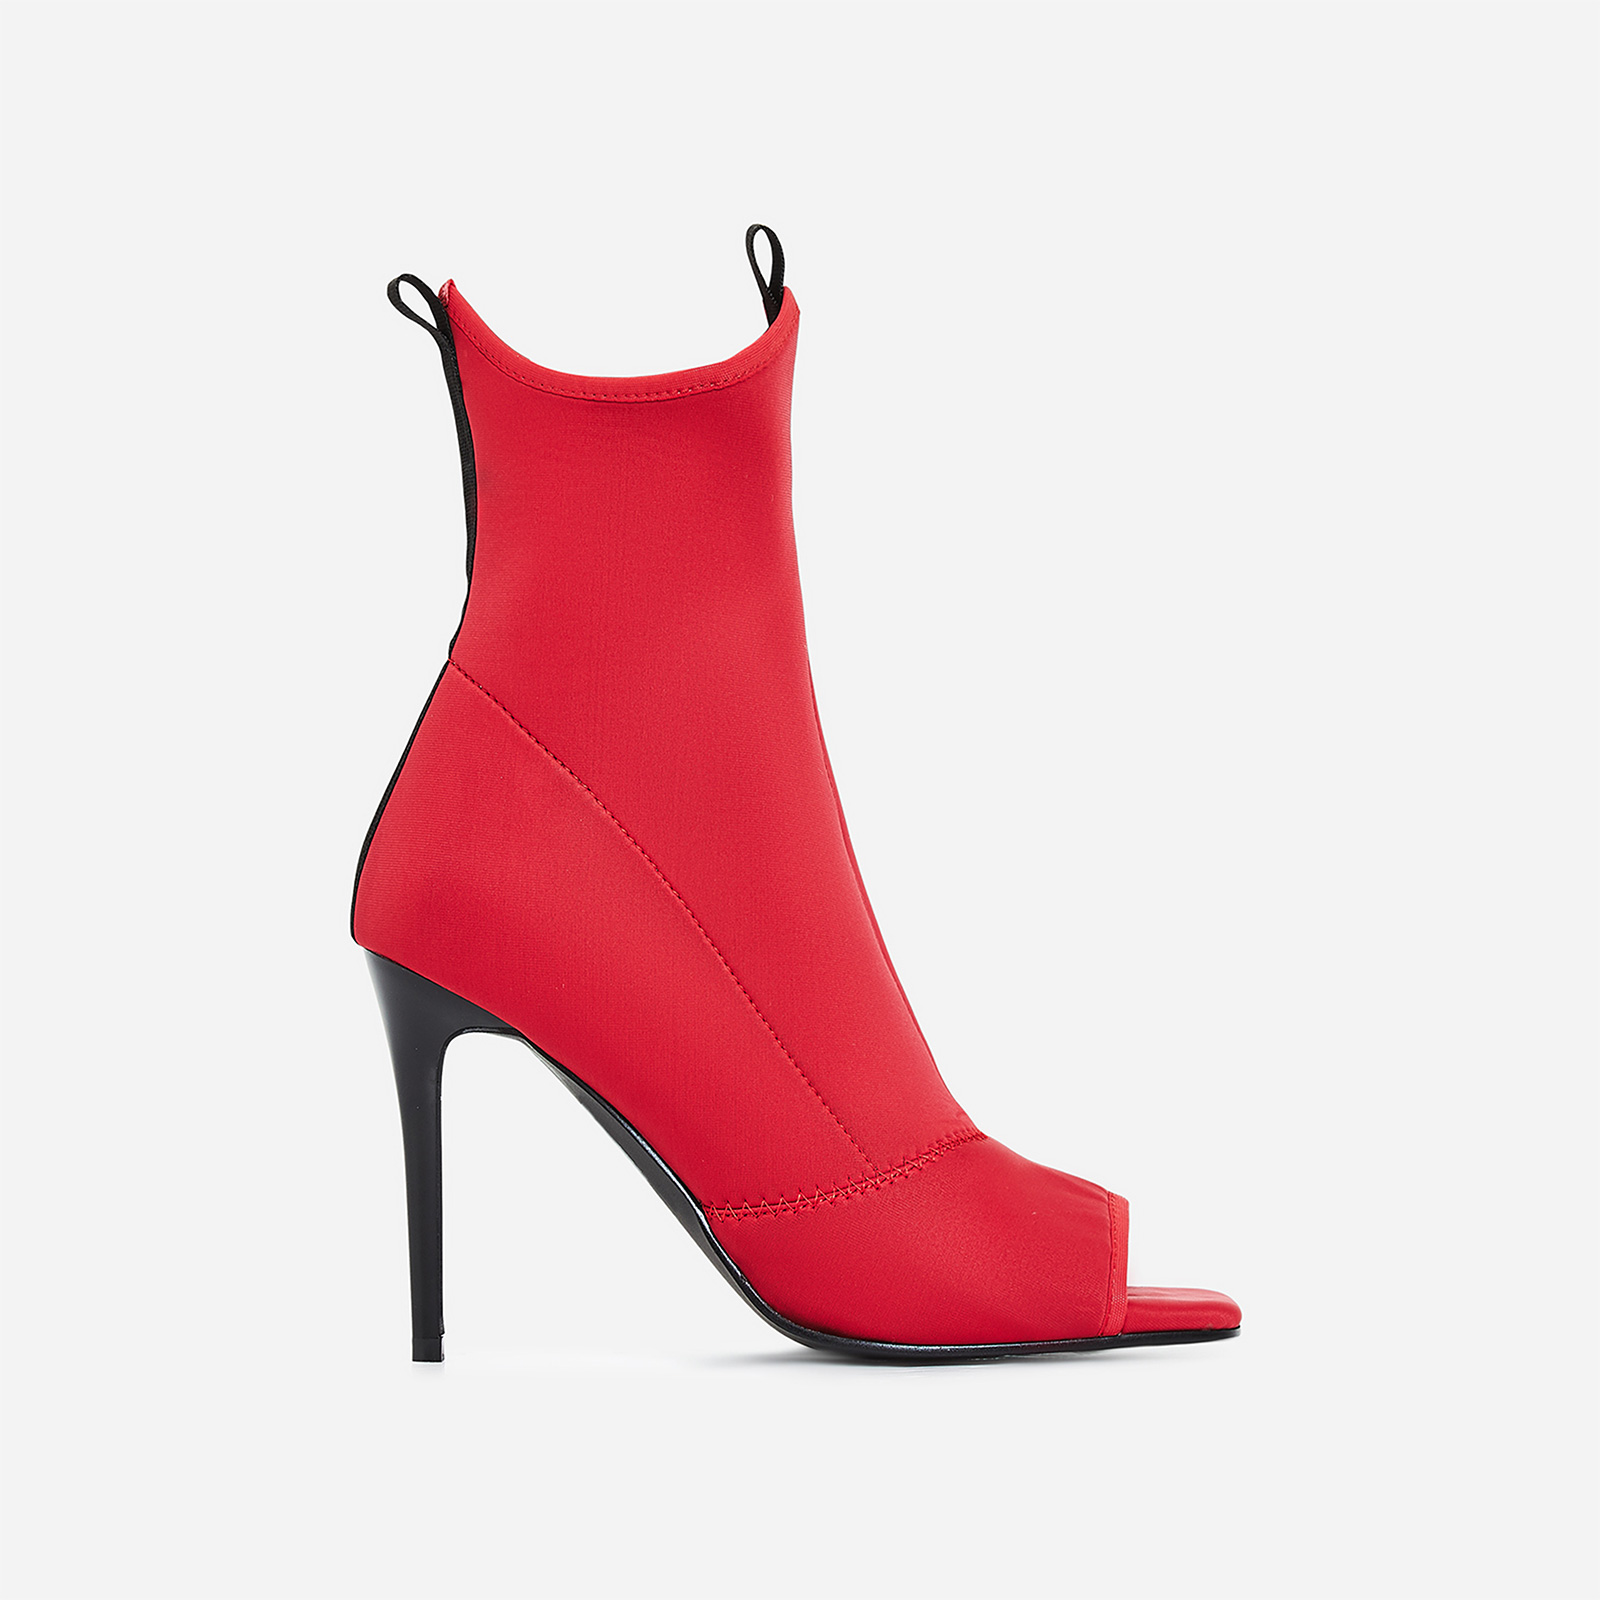 Carter Peep Toe Ankle Sock Boot In Red Lycra